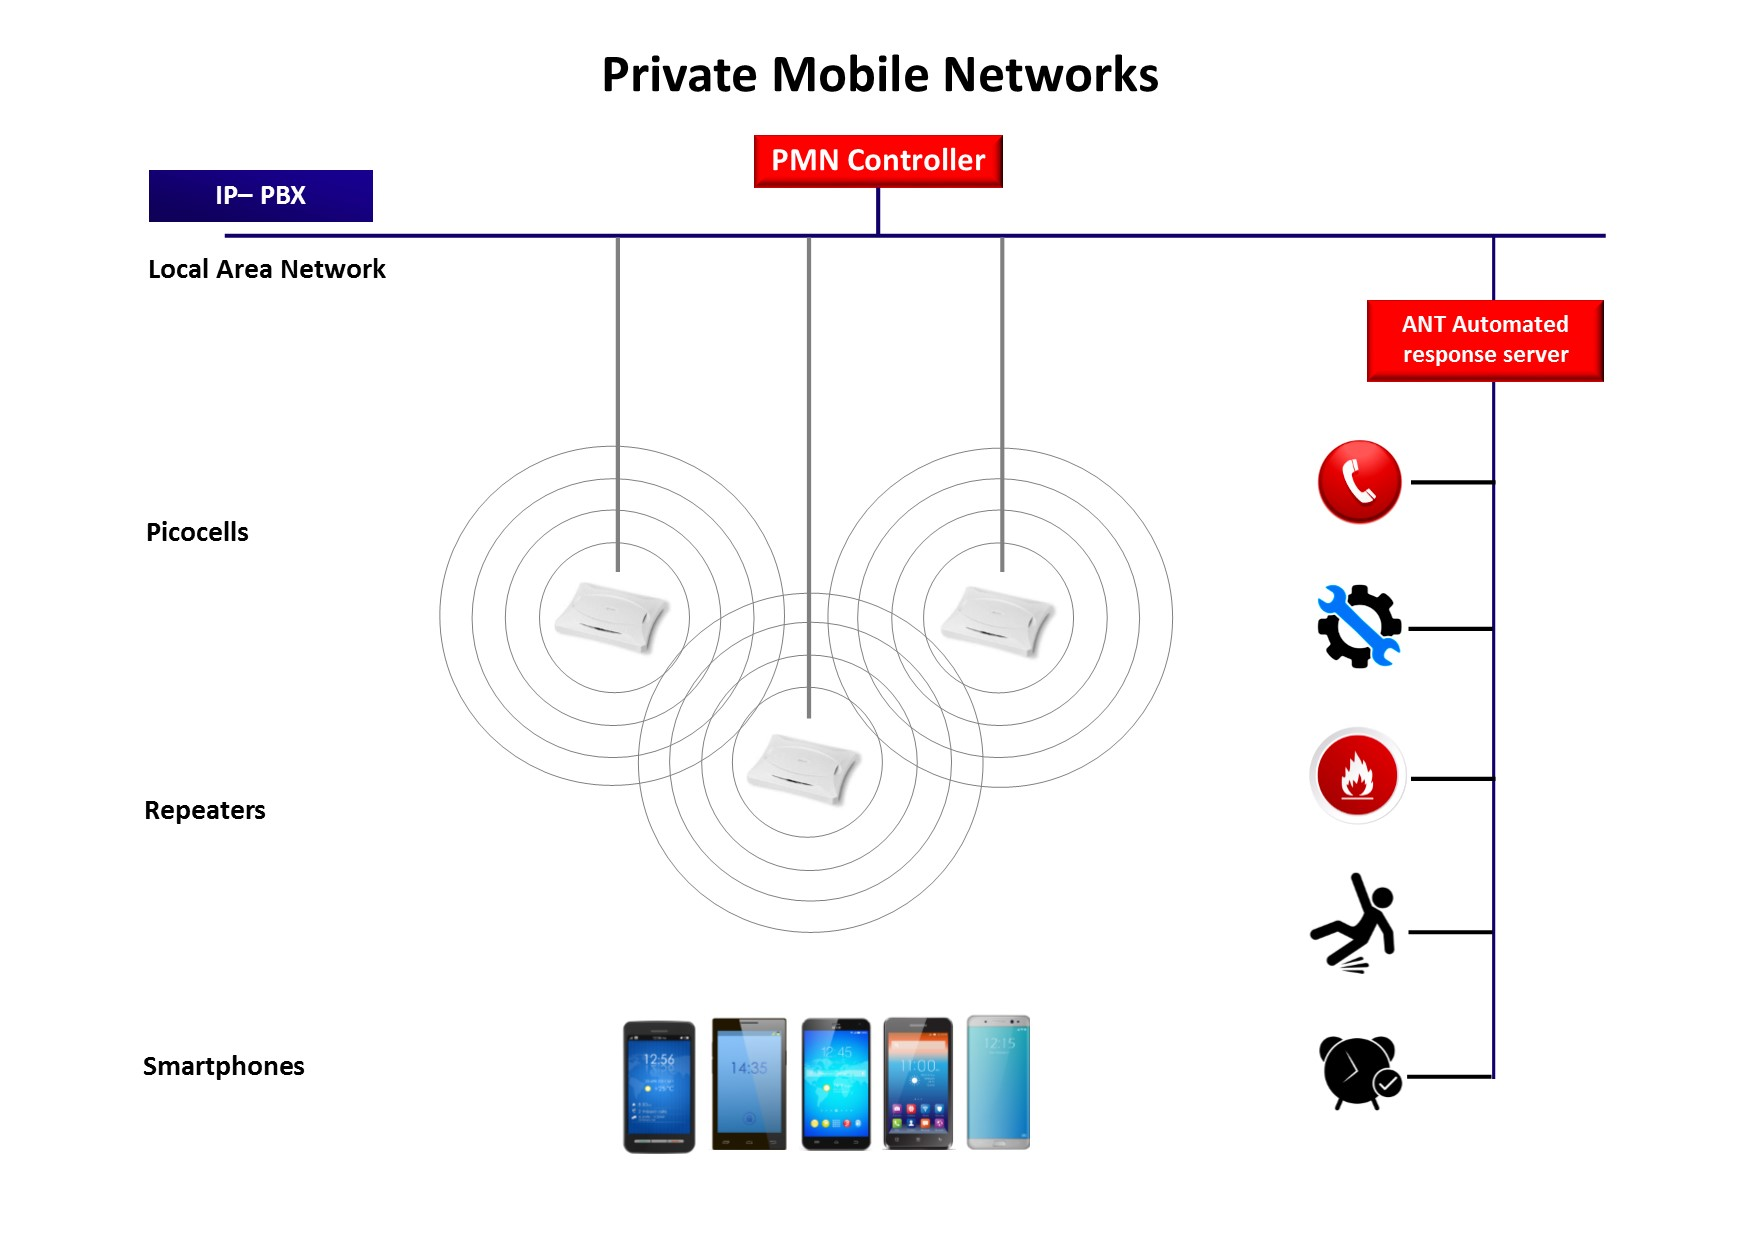 Private Mobile Network schematic